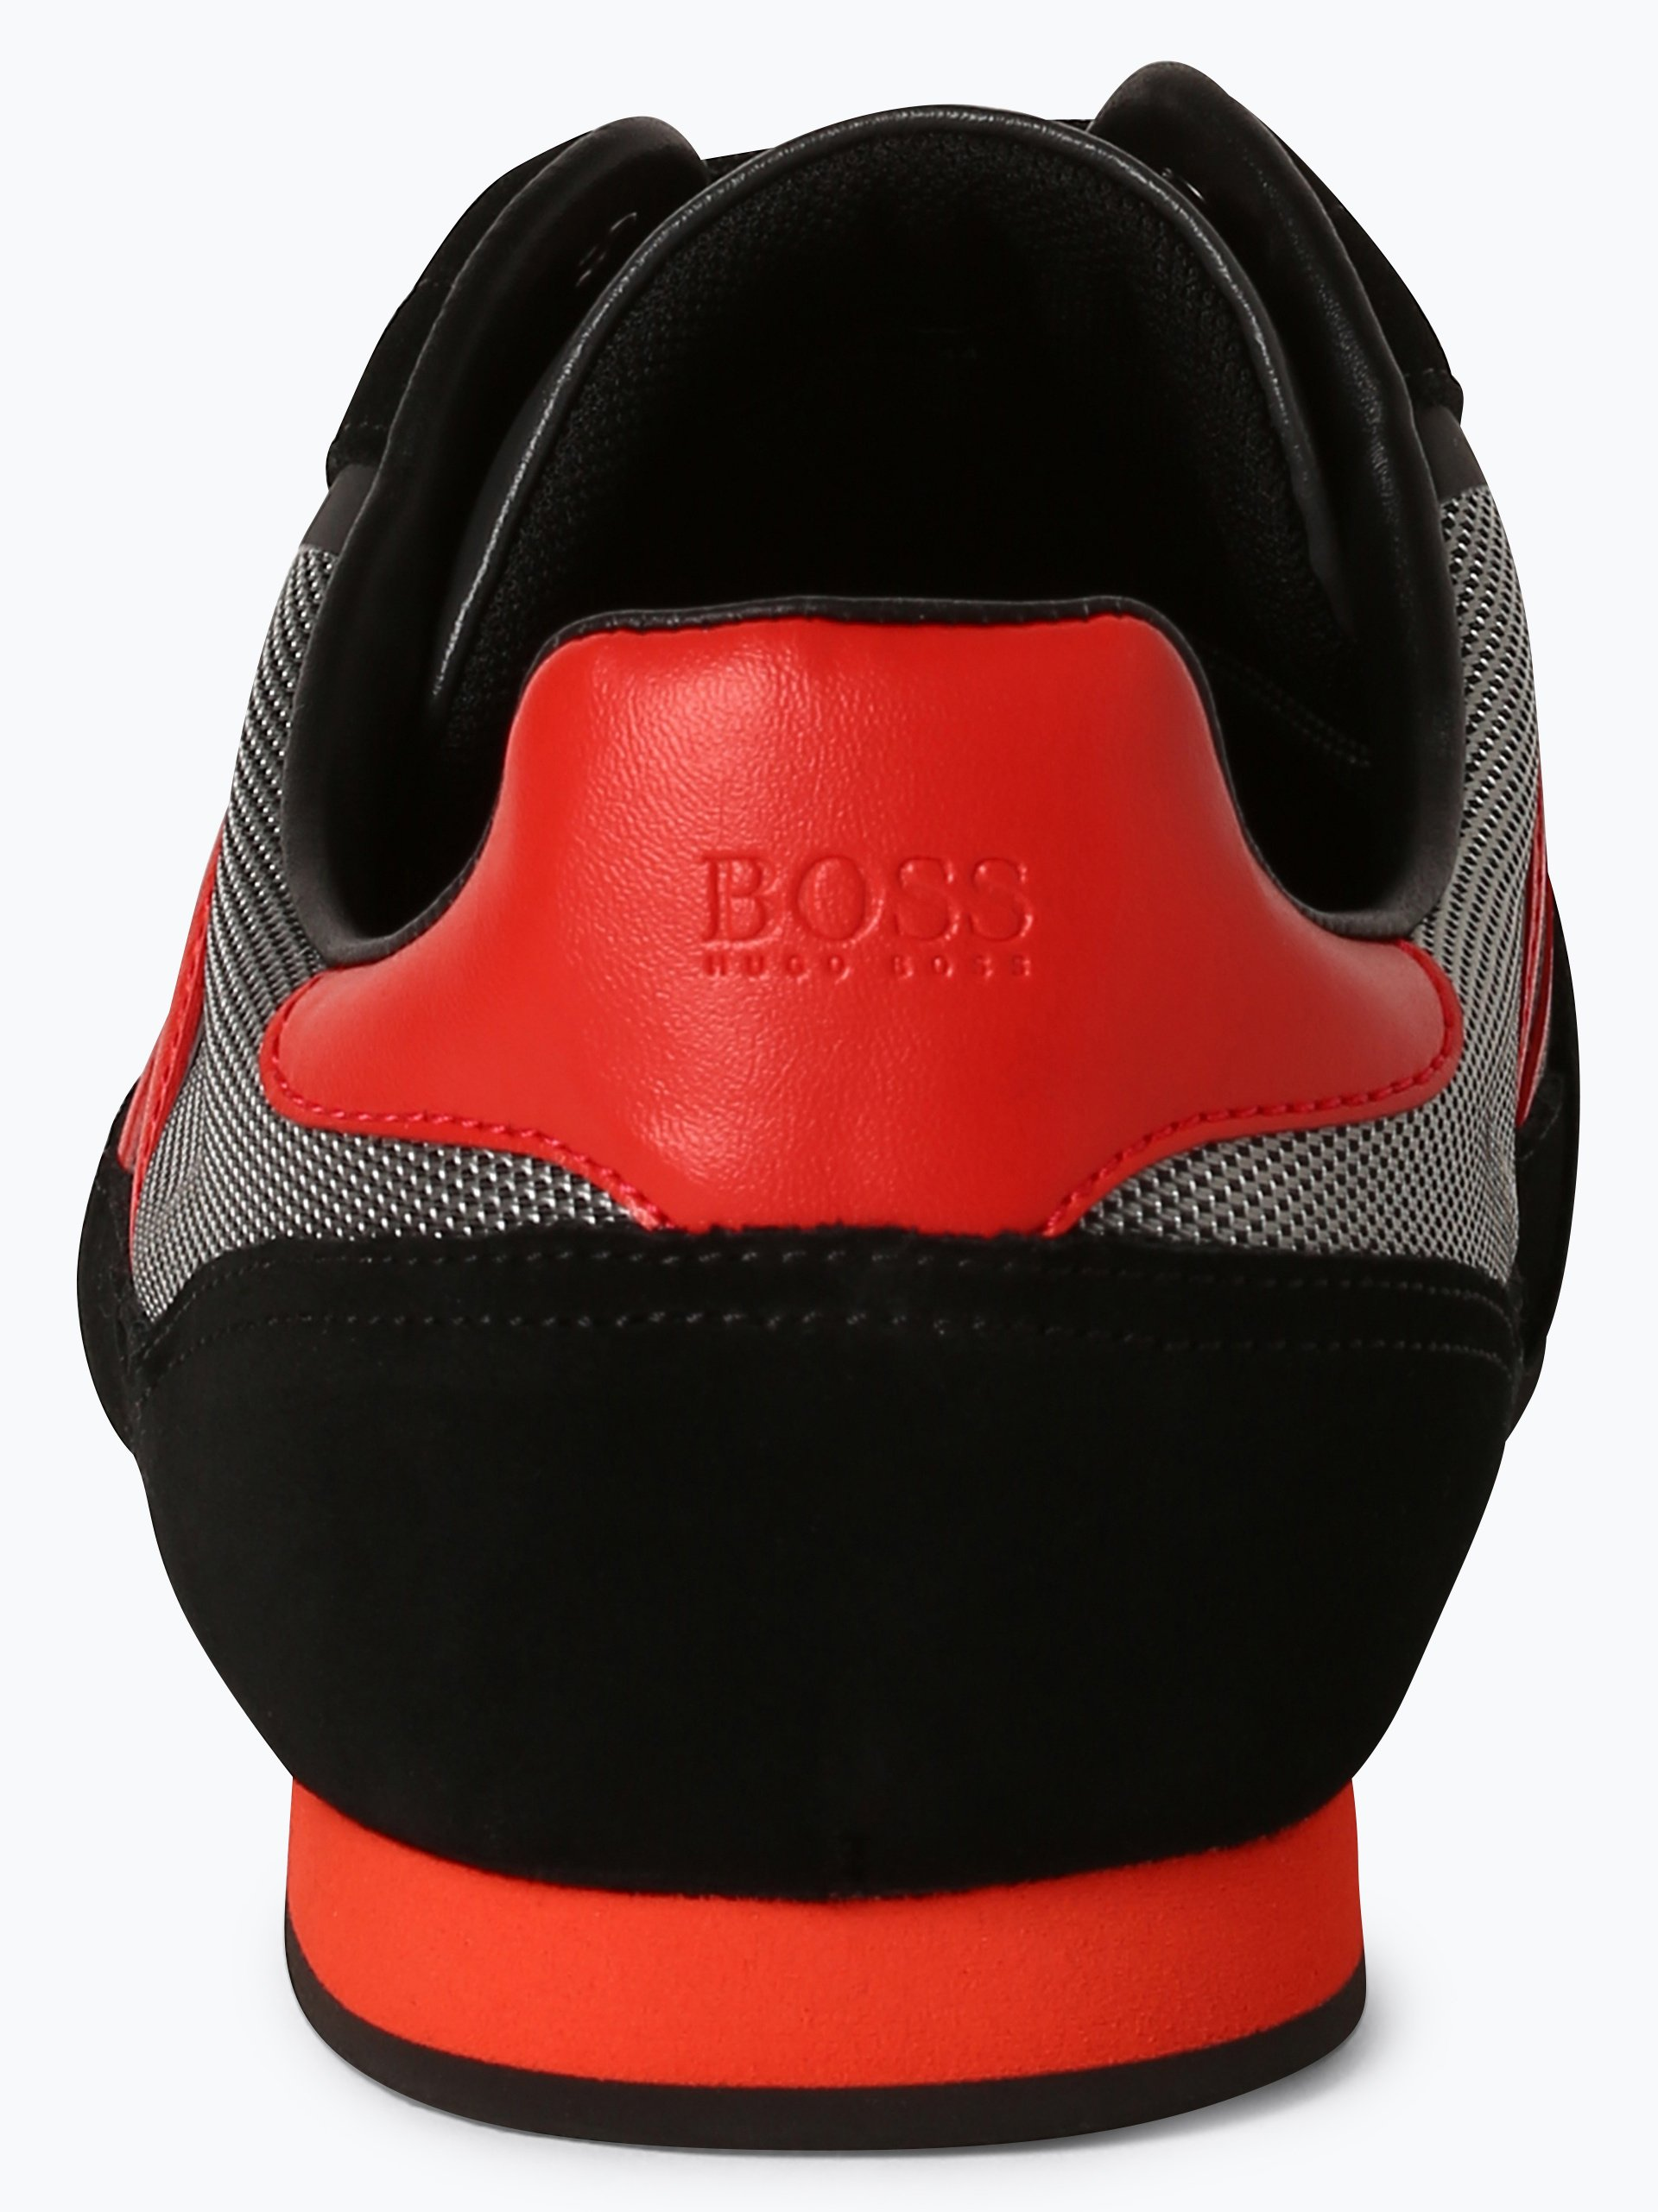 BOSS Athleisure Herren Sneaker mit Leder-Anteil - Lighter-Lowp_flash2